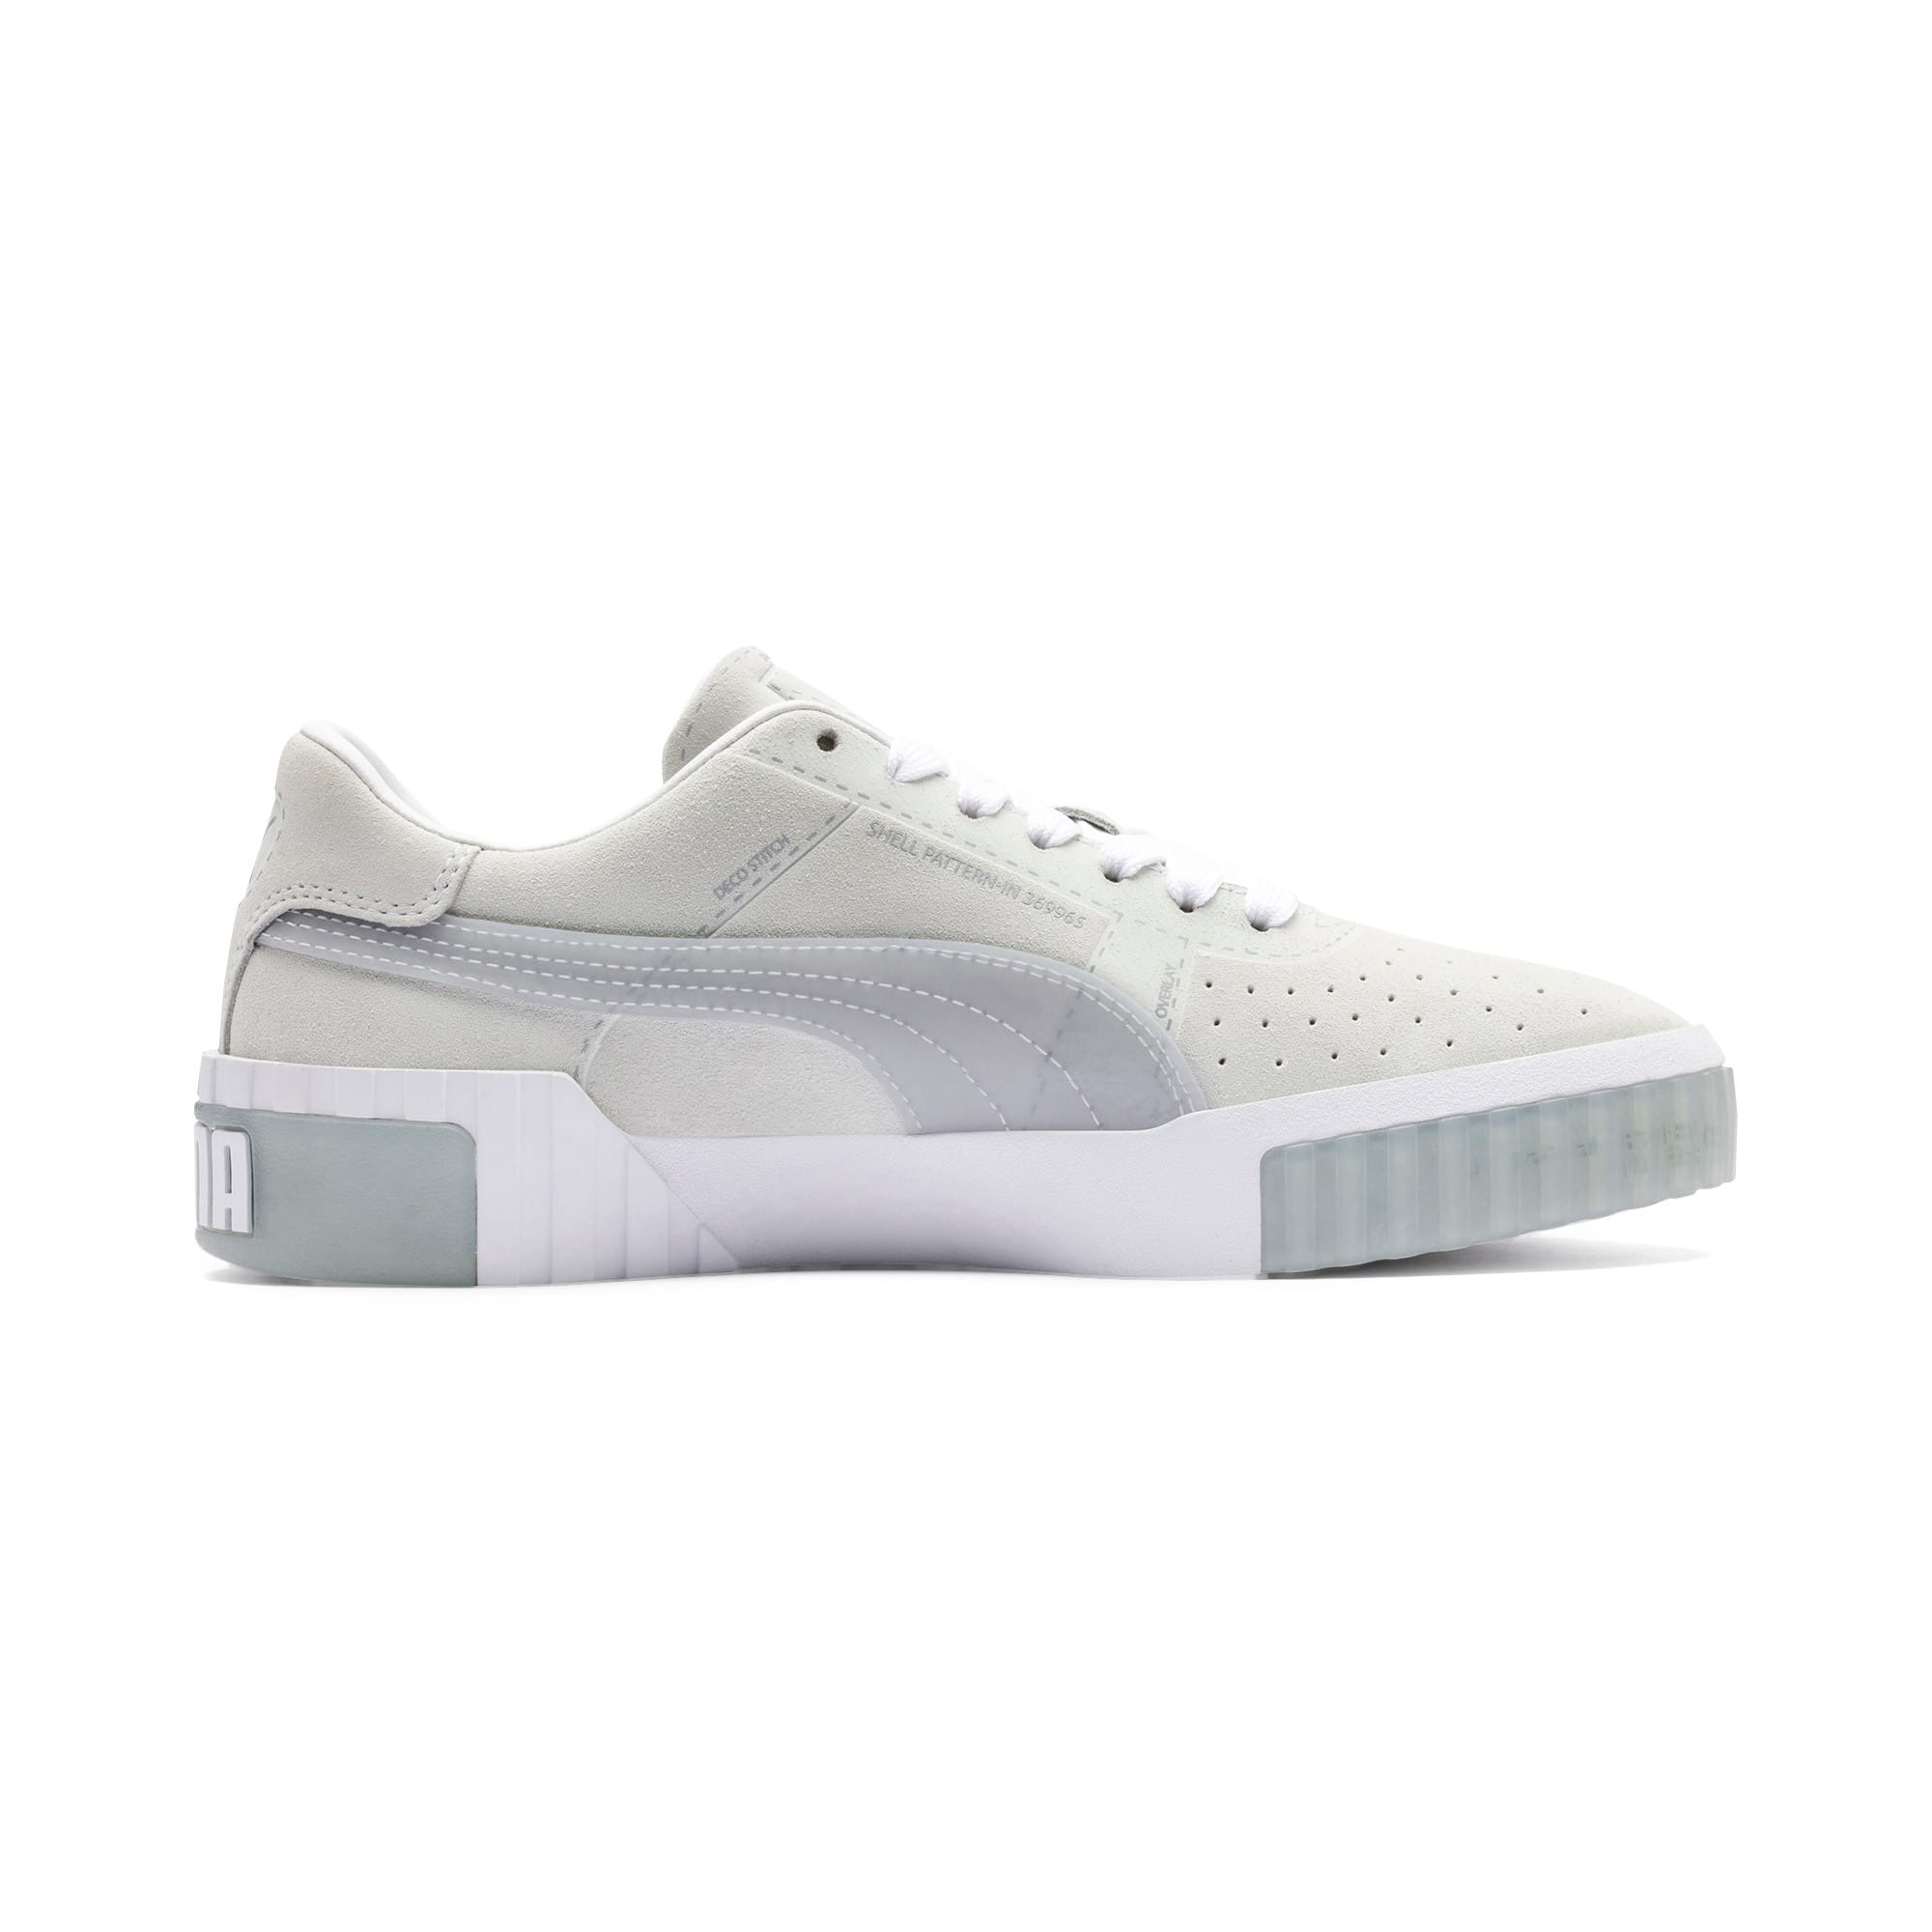 Thumbnail 6 of Cali Patternmaster Women's Trainers, Puma White-Quarry, medium